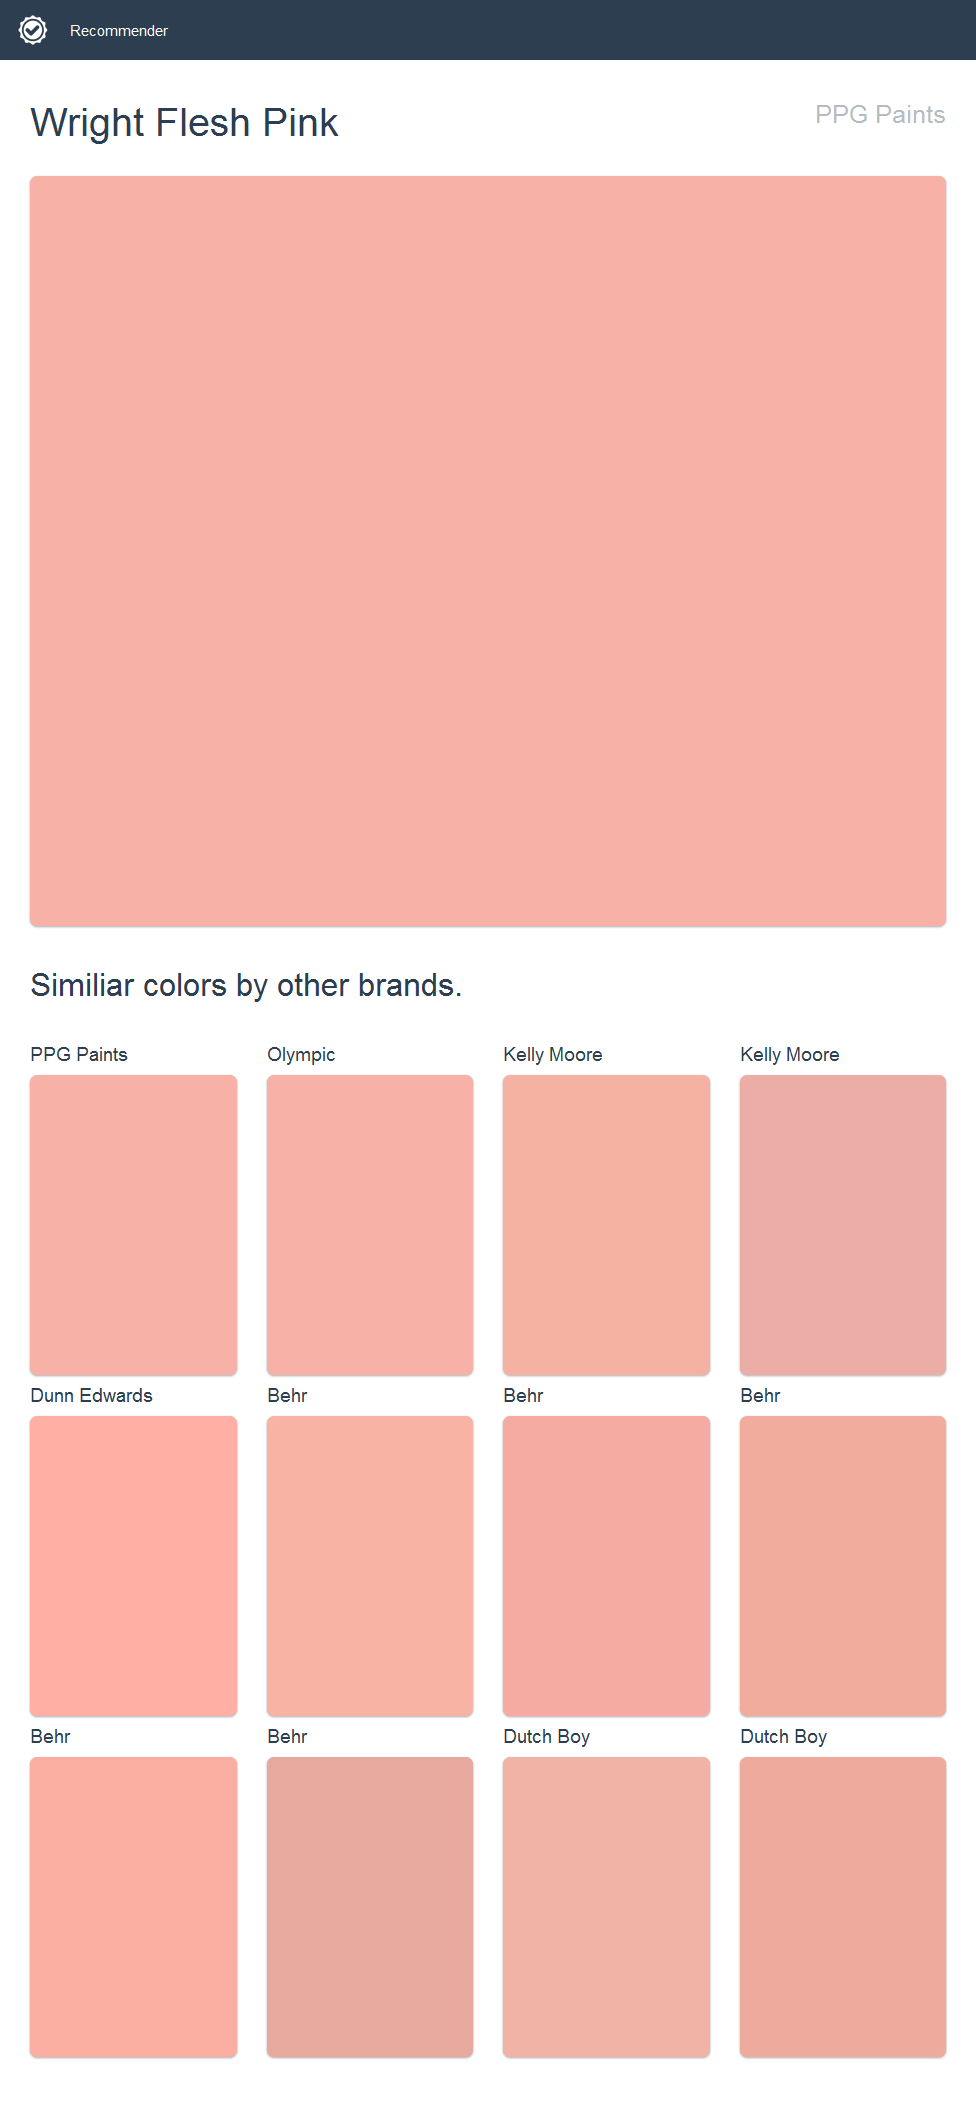 Wright flesh pink ppg paints ppg paint pinterest ppg